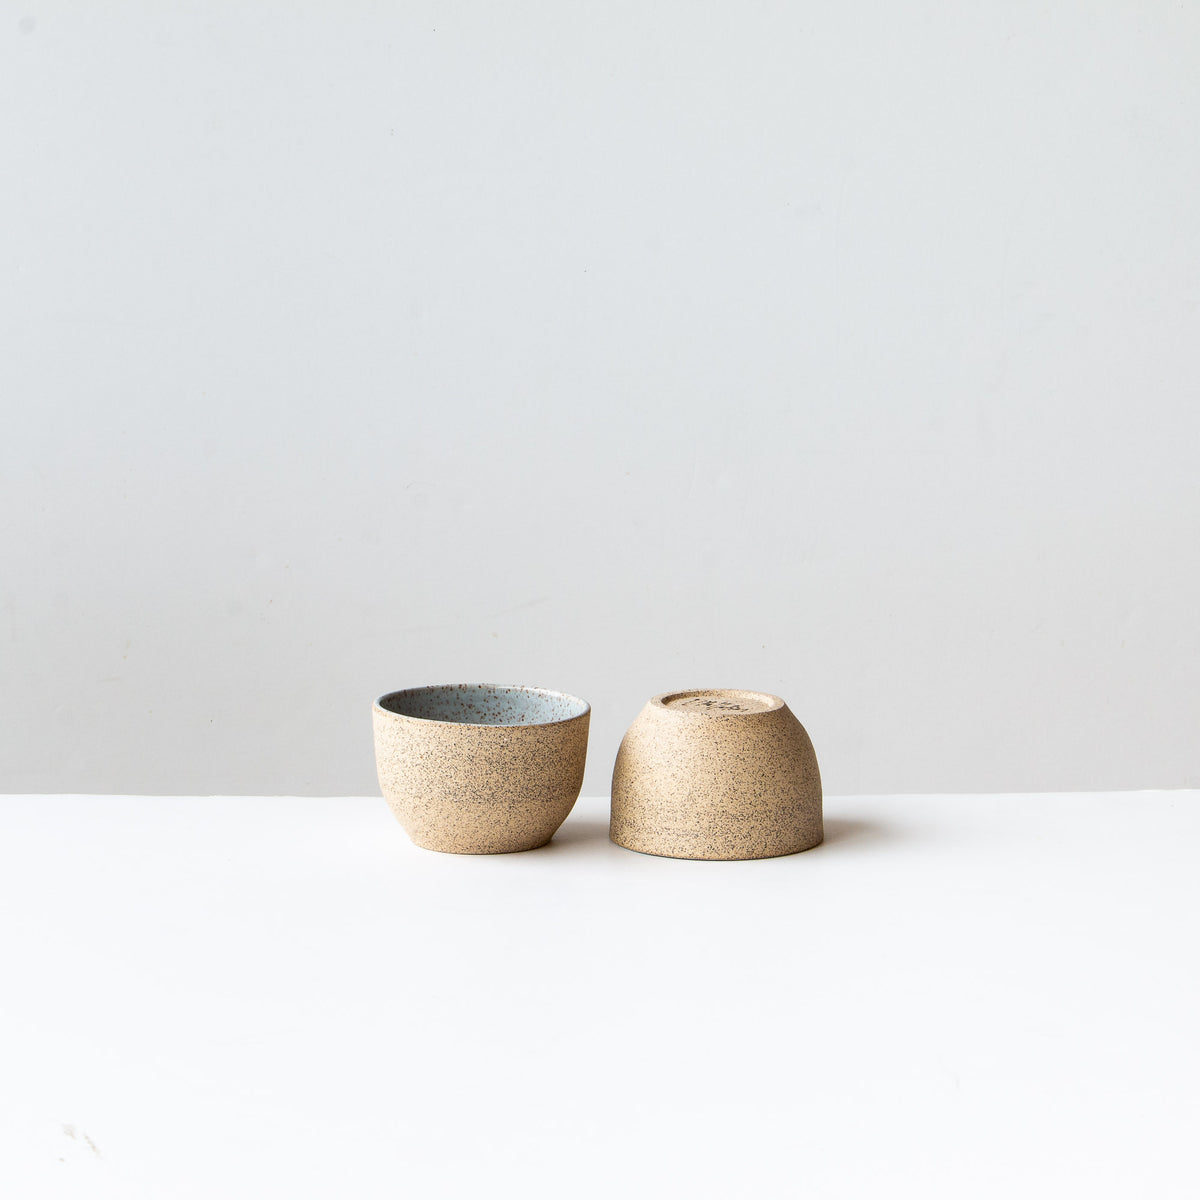 Two Small Speckled Stoneware Tea Bowls - Pale Blue Glaze - Sold by Chic & Basta